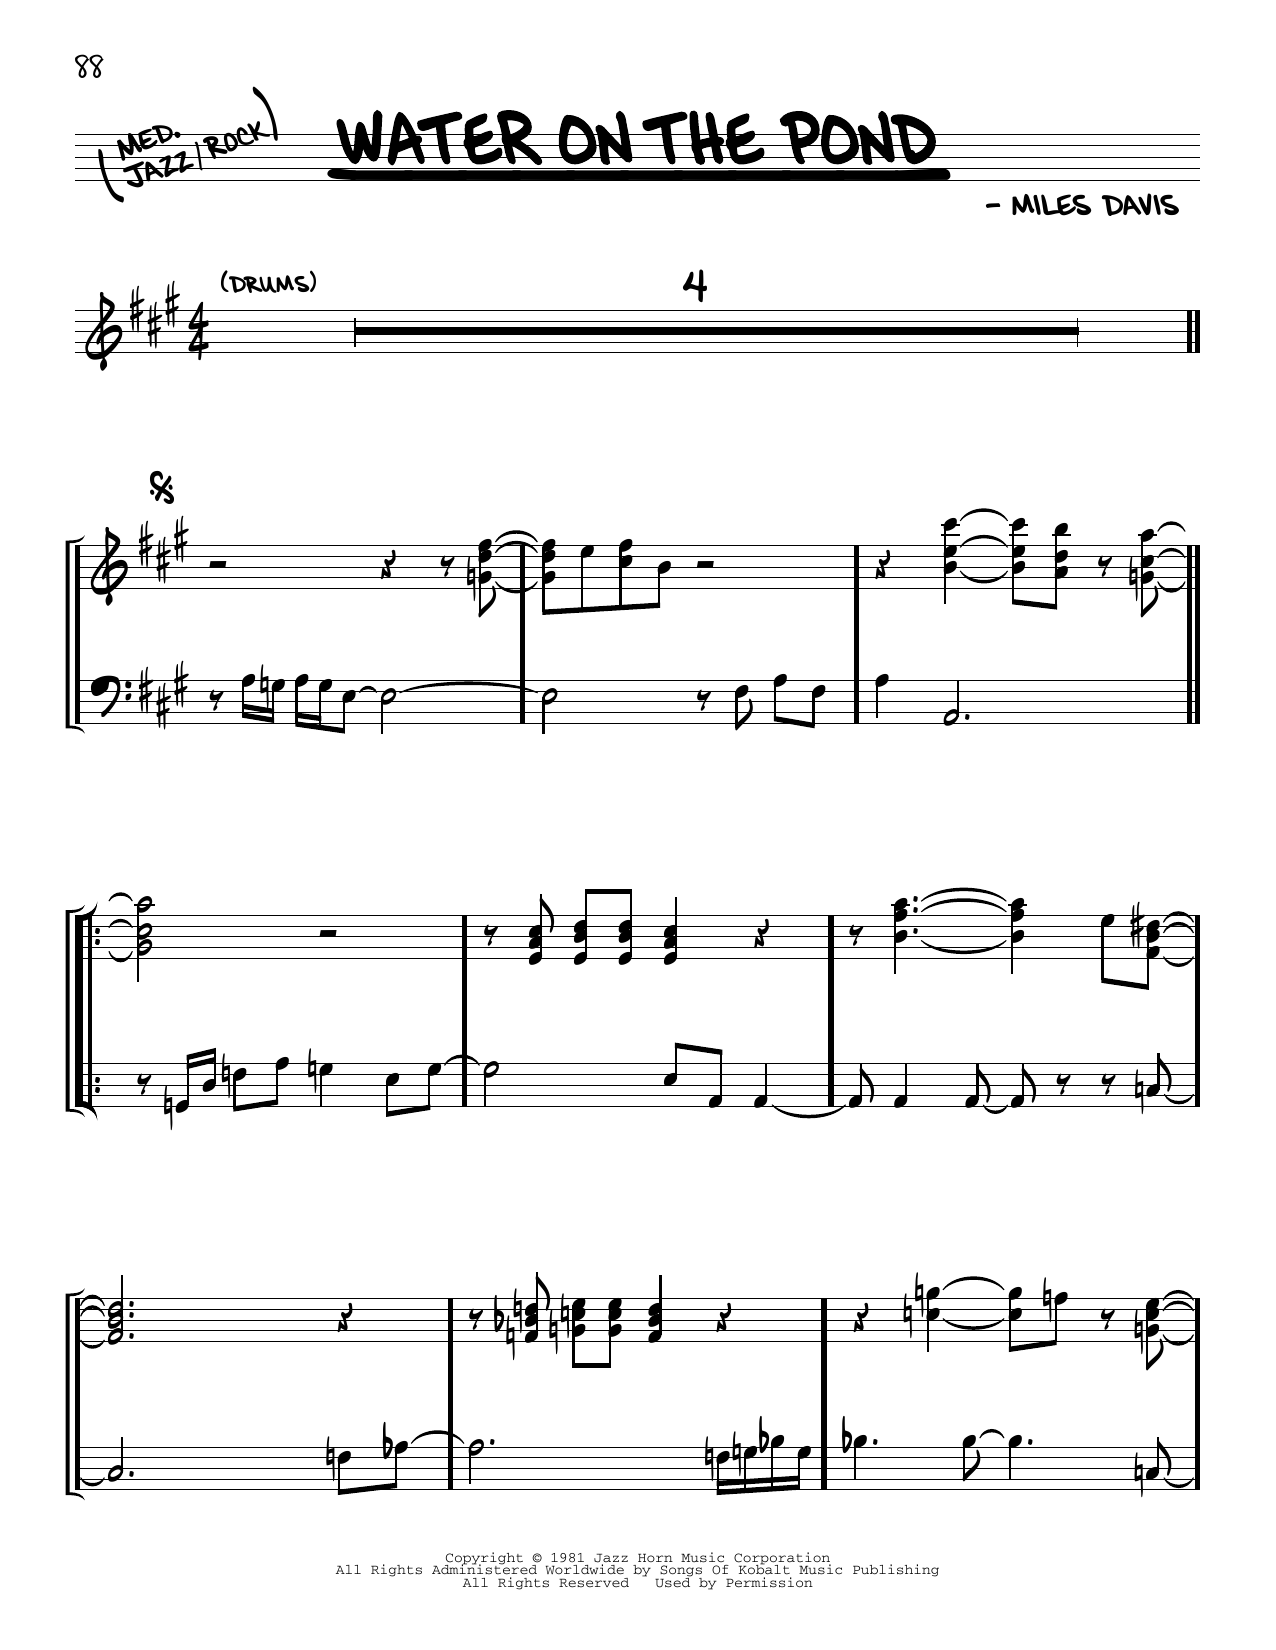 Miles Davis Water On The Pond sheet music notes and chords. Download Printable PDF.